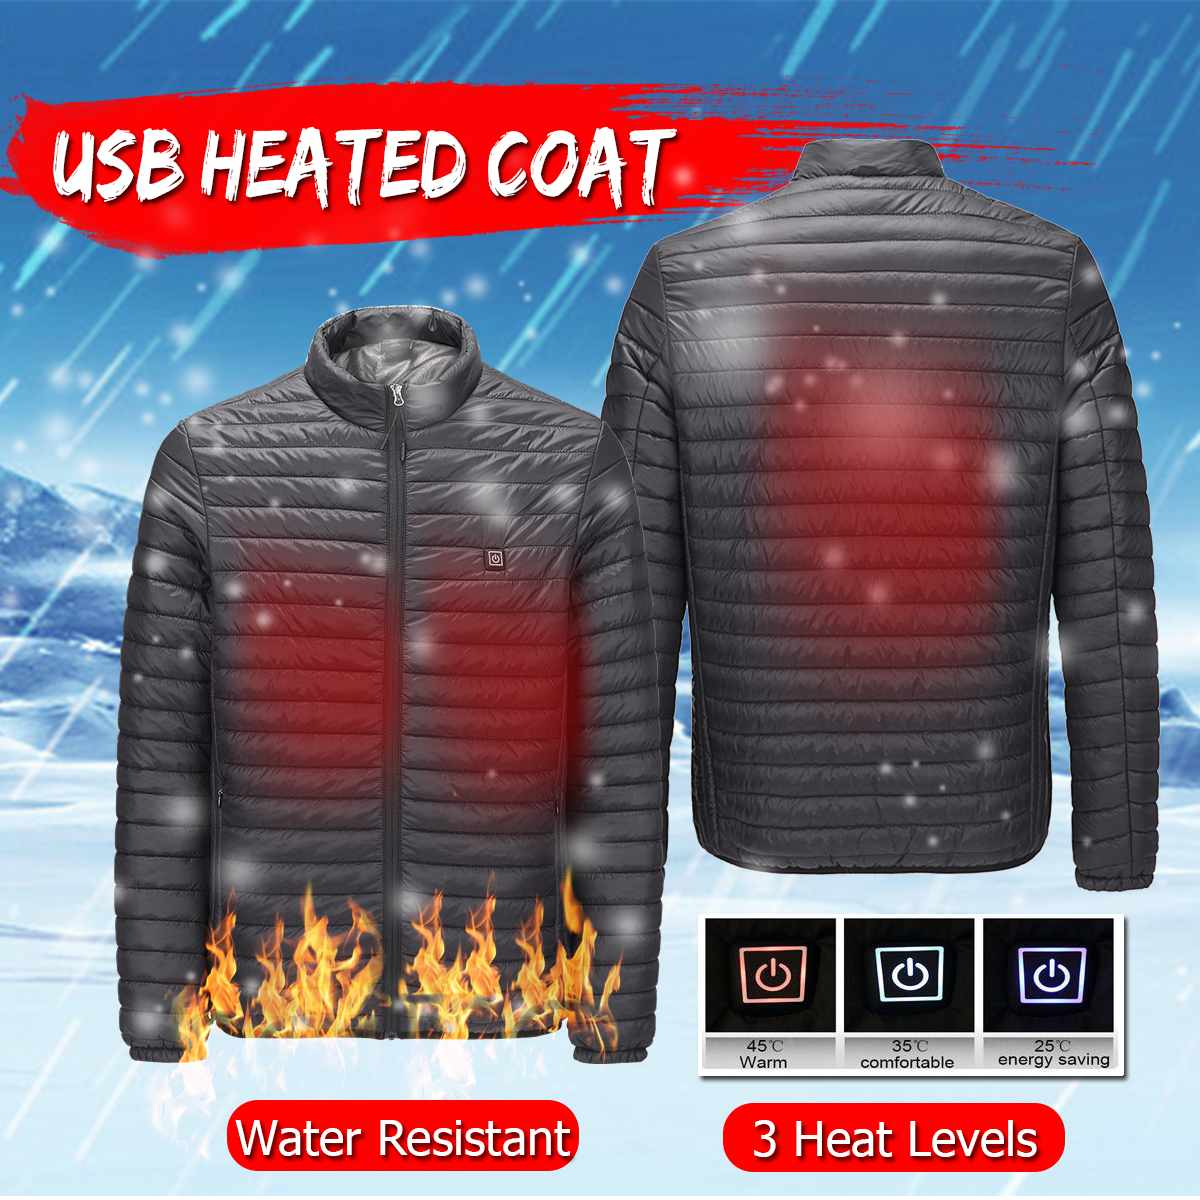 Men Women USB Fast Heating Jackets Electric Back Abdomen Heated Temperature controllable intelligent Coats Work Safety Clothing